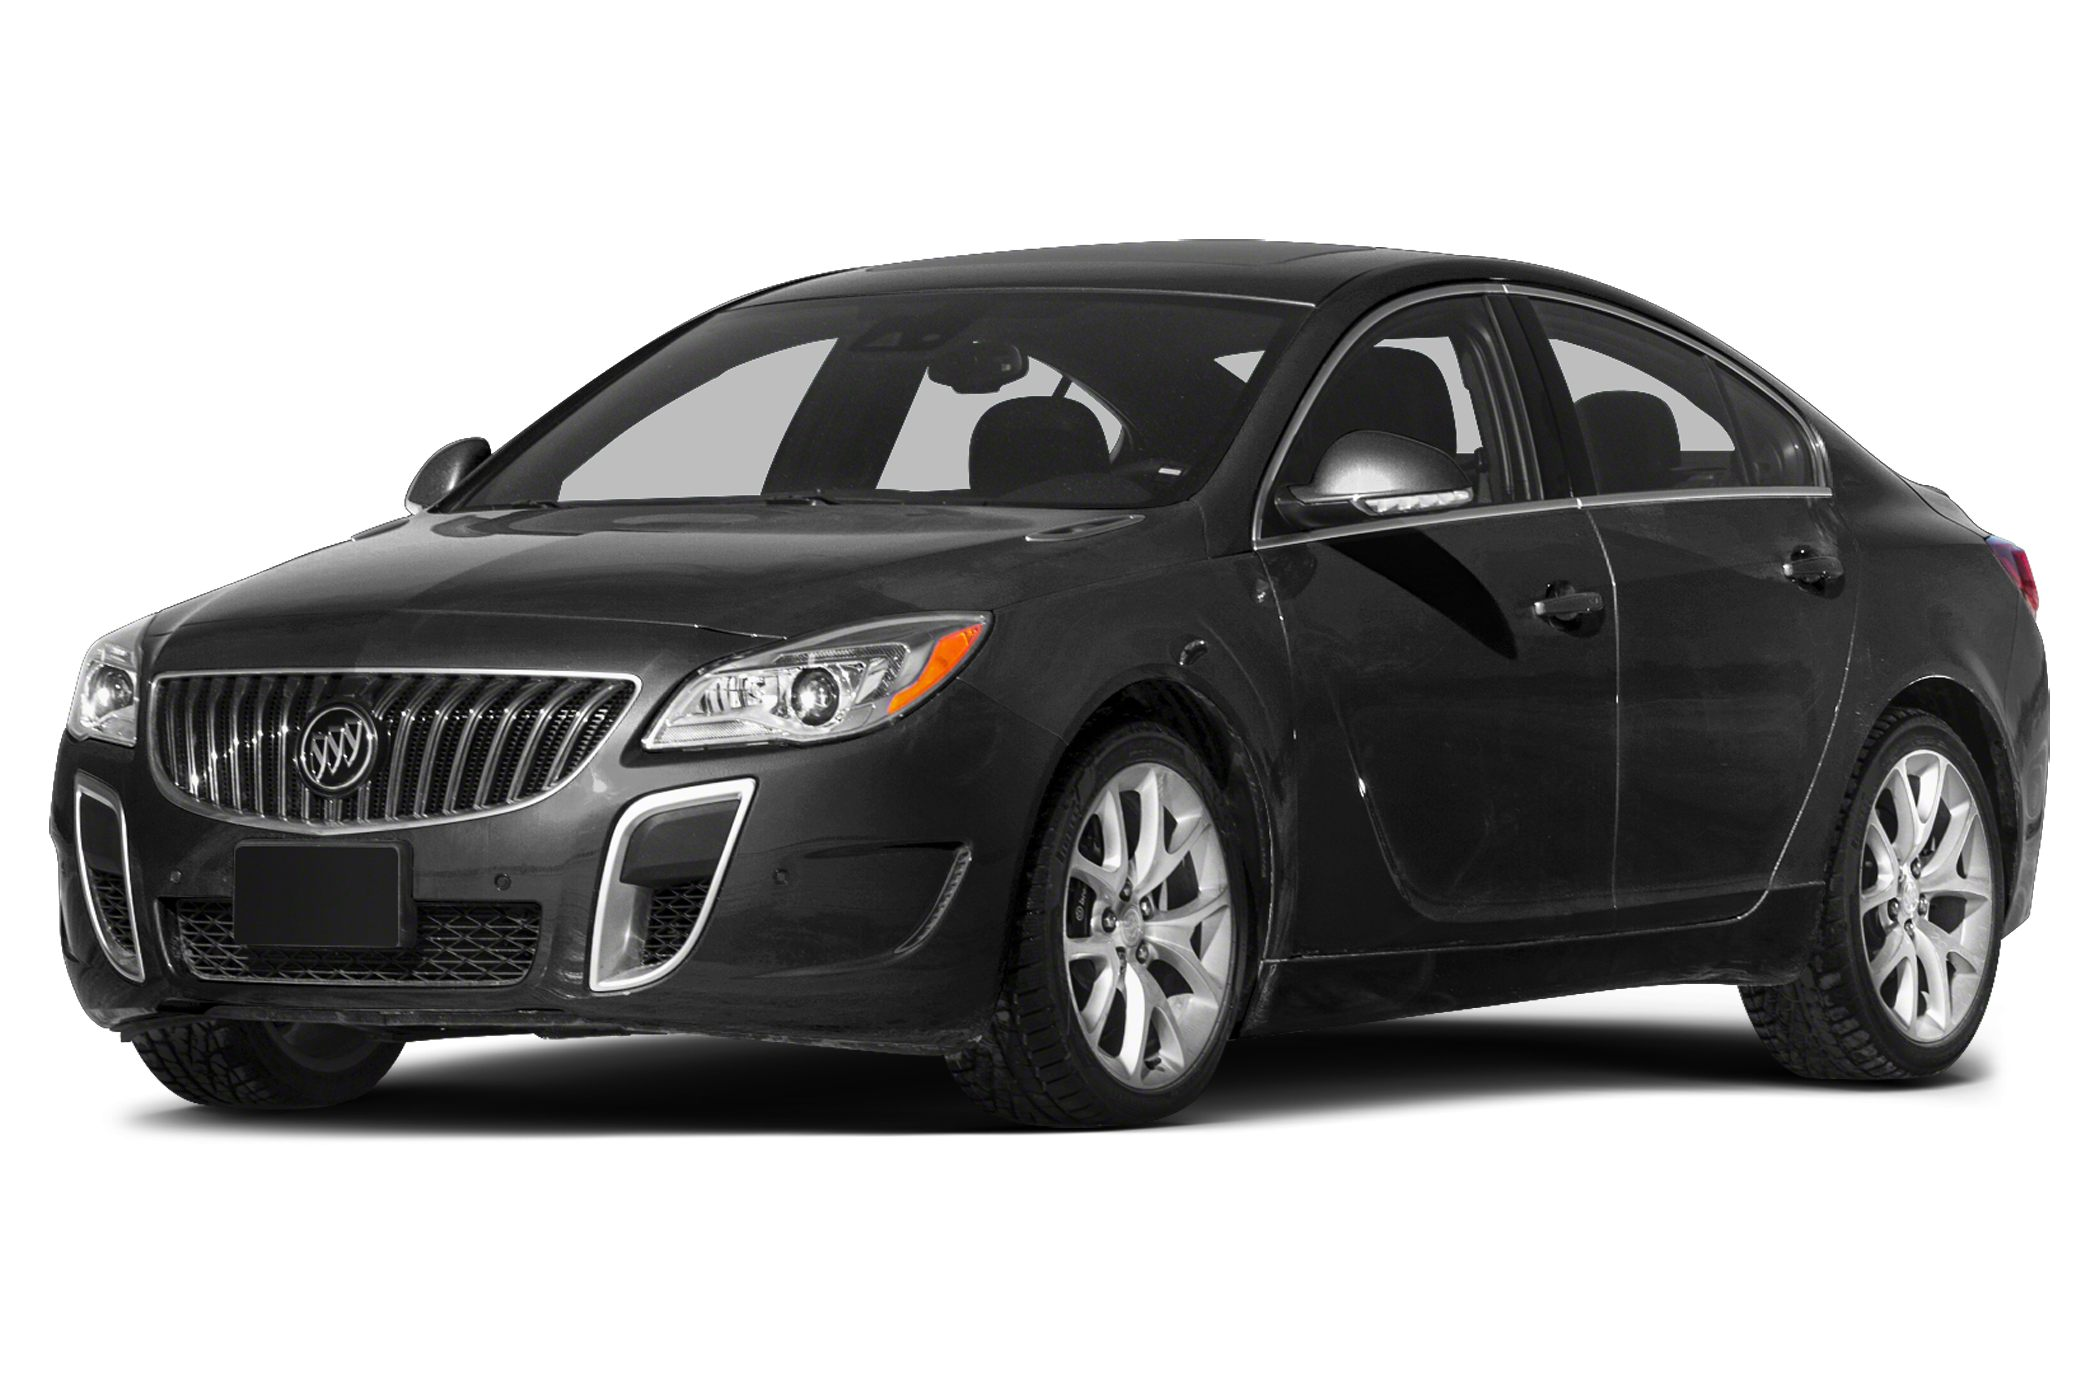 2015 Buick Regal GS Sedan for sale in Plainville for $45,160 with 25 miles.